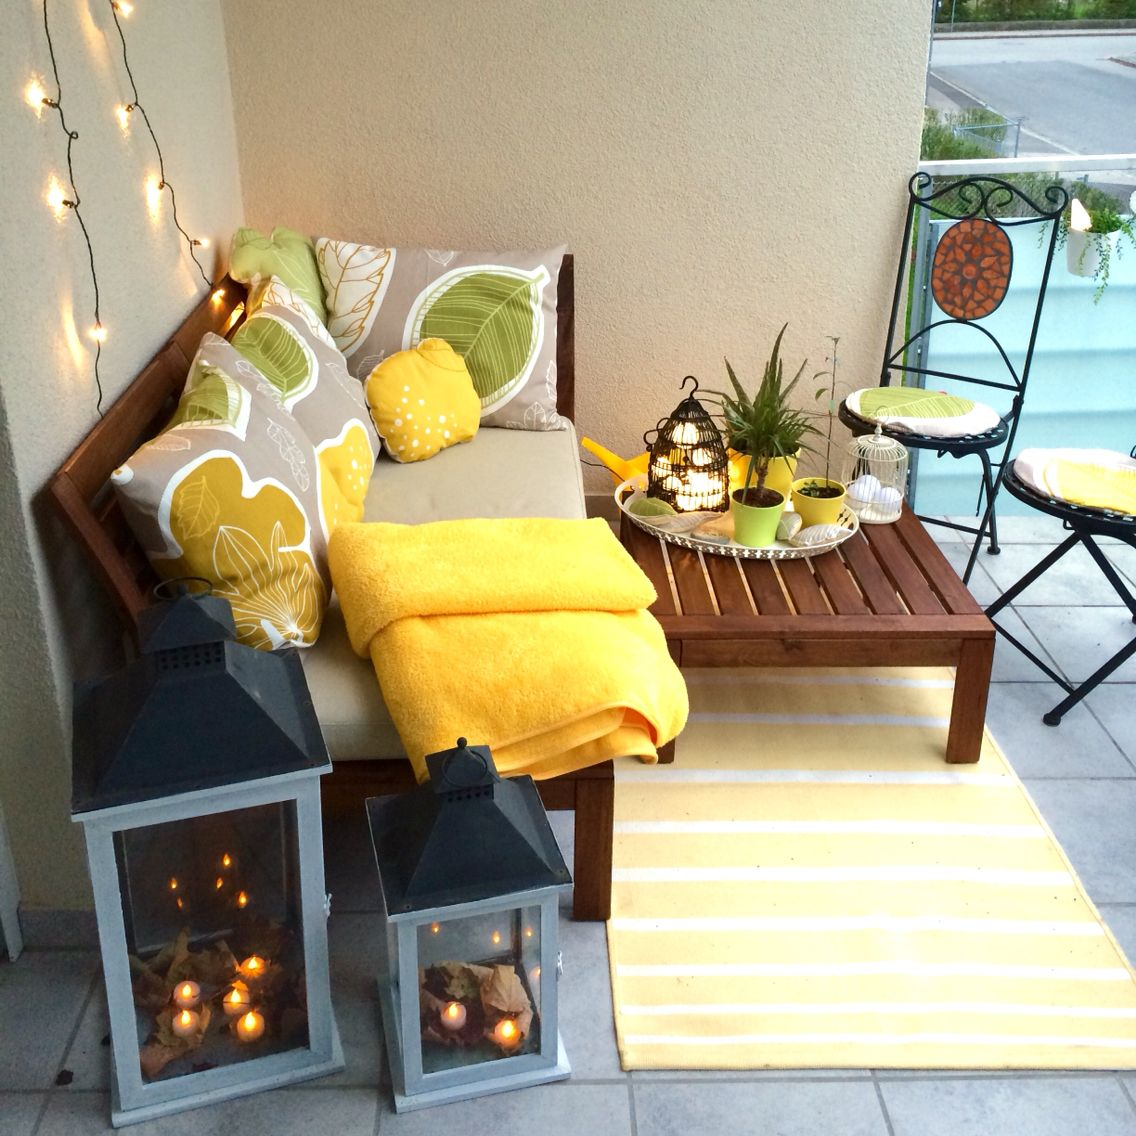 Small Balcony Ideas My New Balcony Ikea Applaro Furniture Gurine Fabric On Cushio Small Balcony Furniture Small Balcony Design Apartment Balcony Decorating